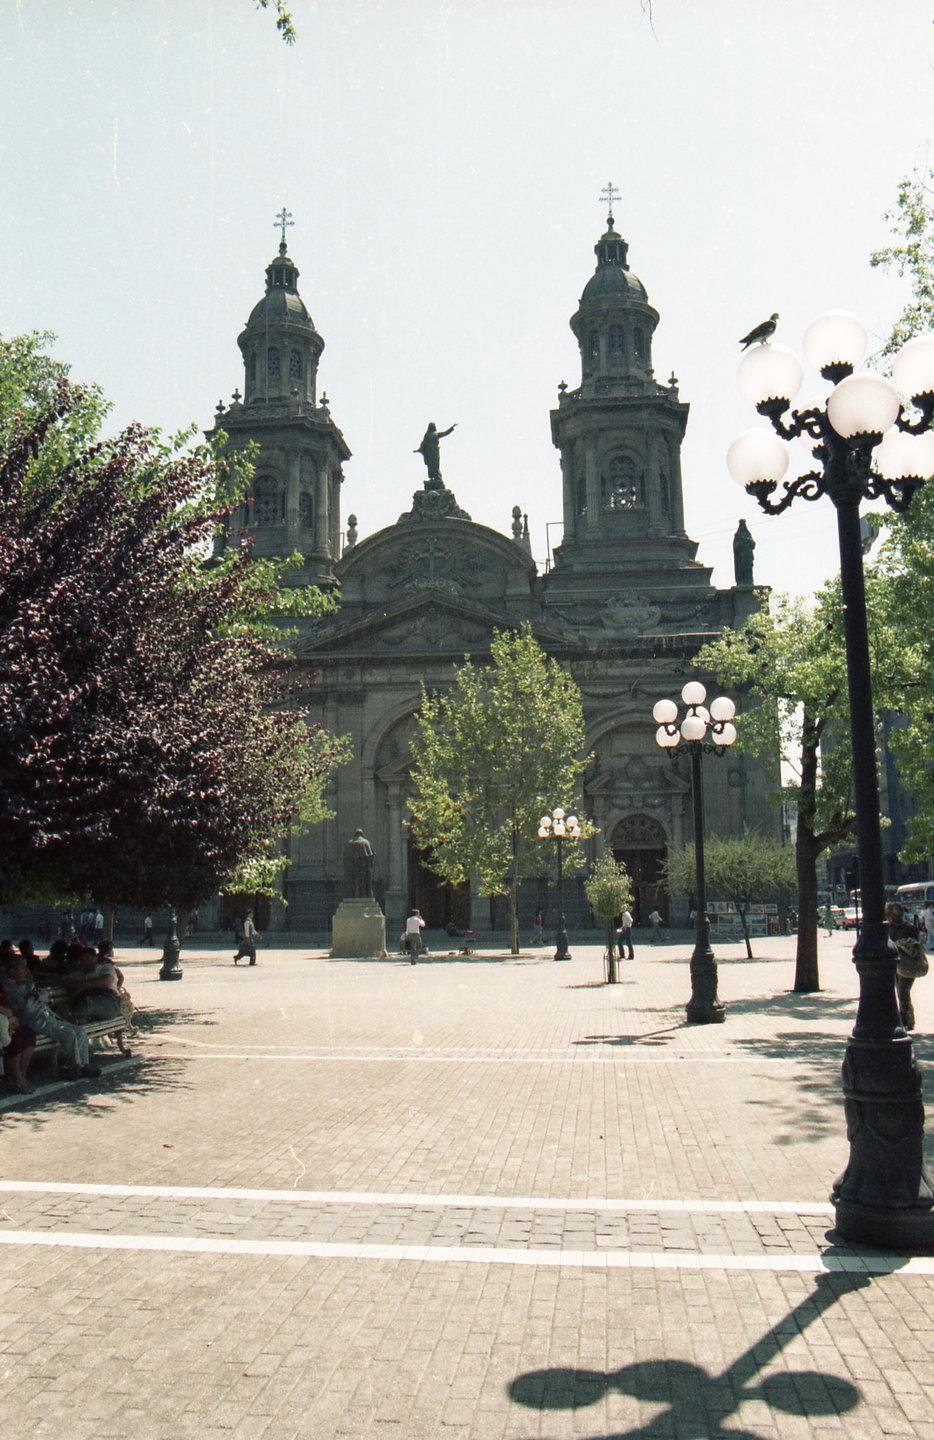 Enterreno - Fotos históricas de chile - fotos antiguas de Chile - Catedral de Santiago CA 1990